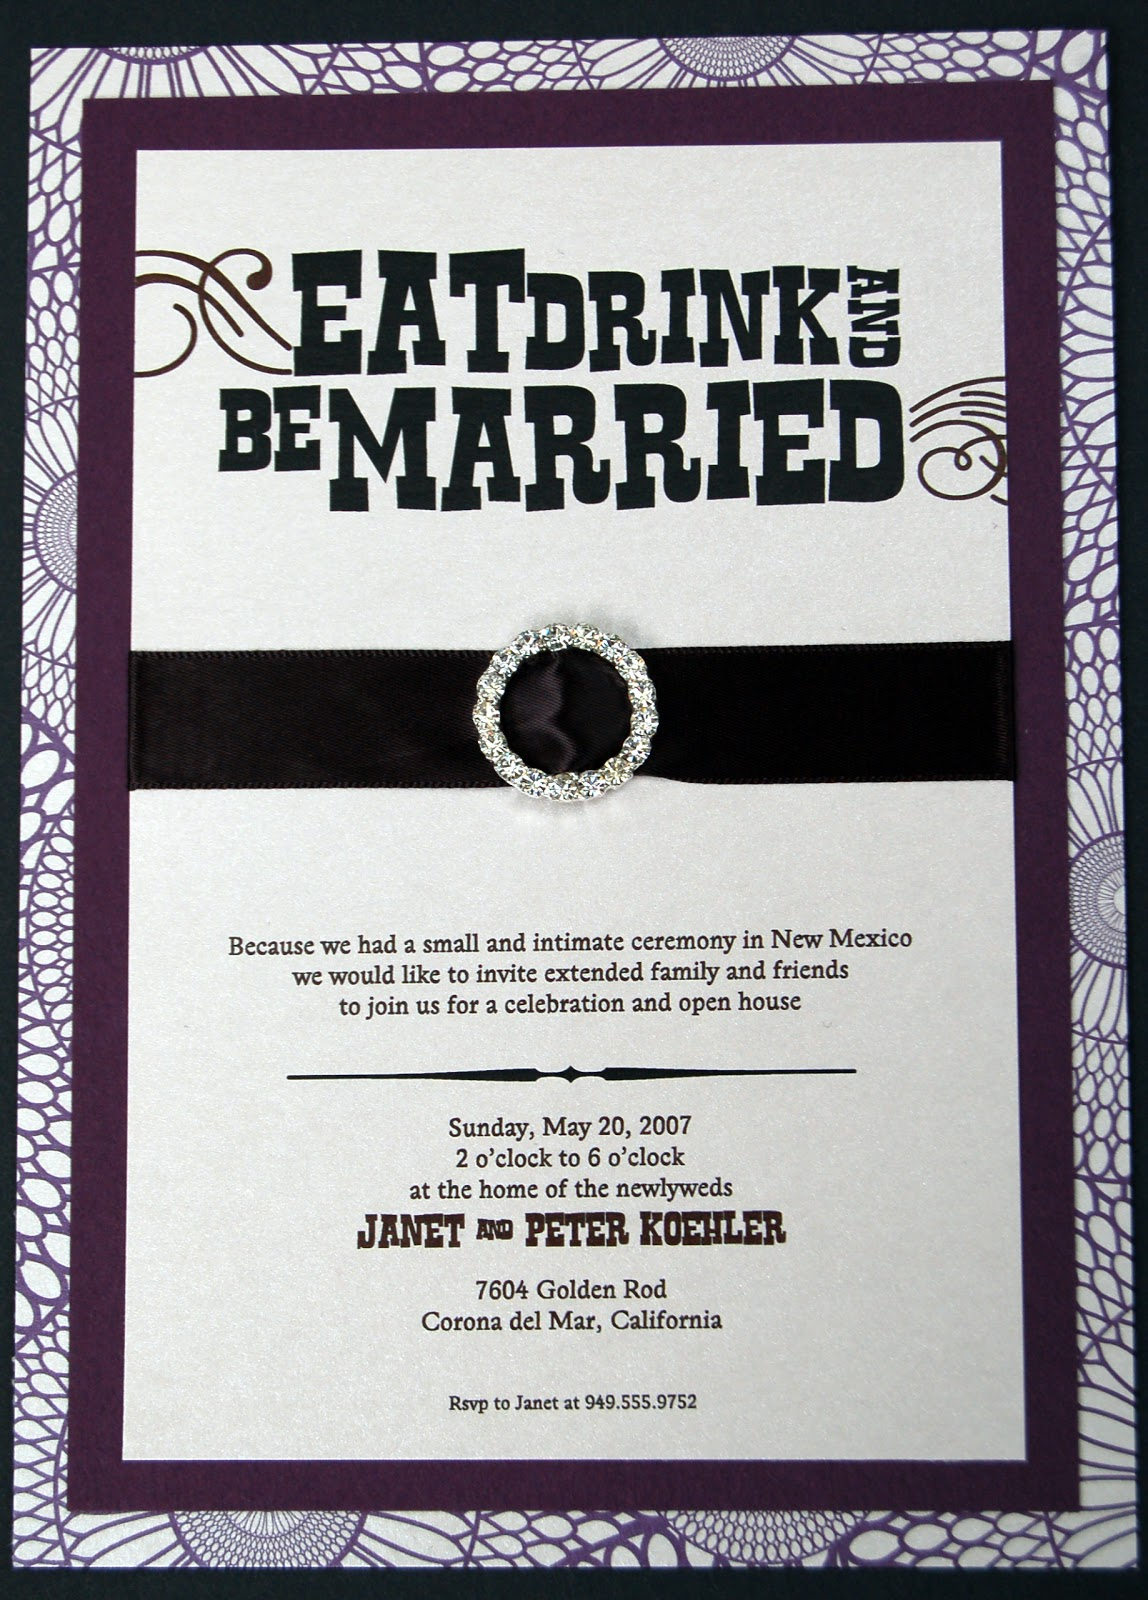 Fine Prints: Eat, Drink, and Be Married - Post Wedding Invitations ...